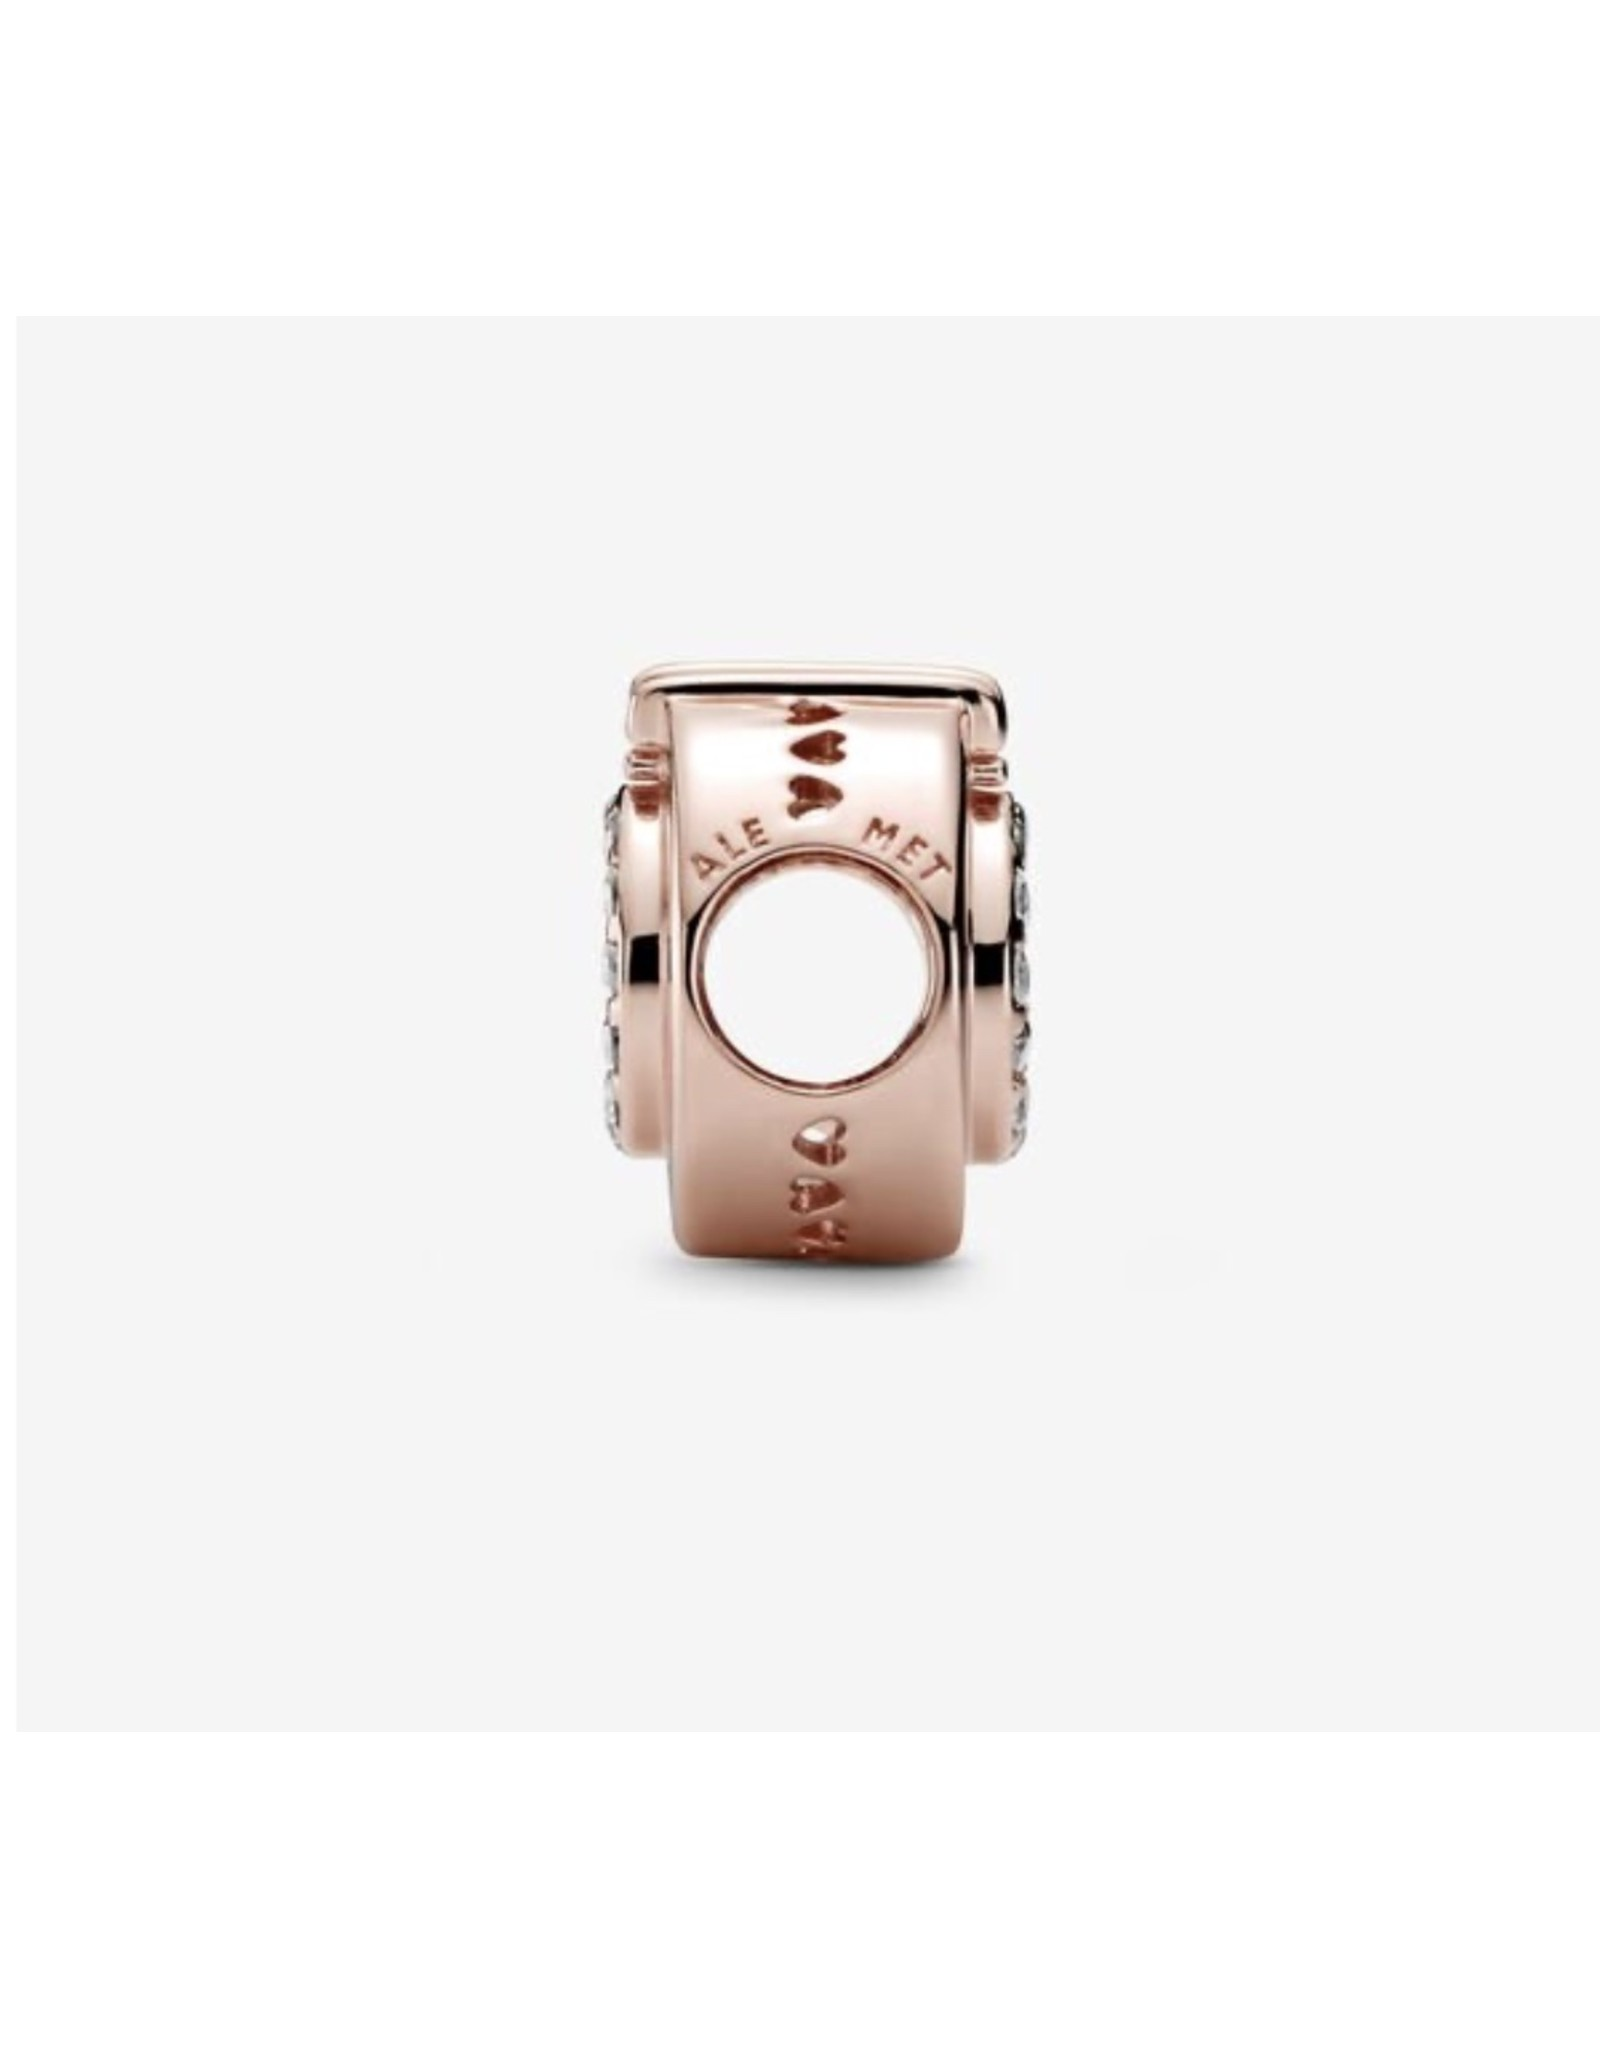 Pandora Pandora Charm,789059C01, Signature Open center Pave Crown O Clear CZ Rose Gold